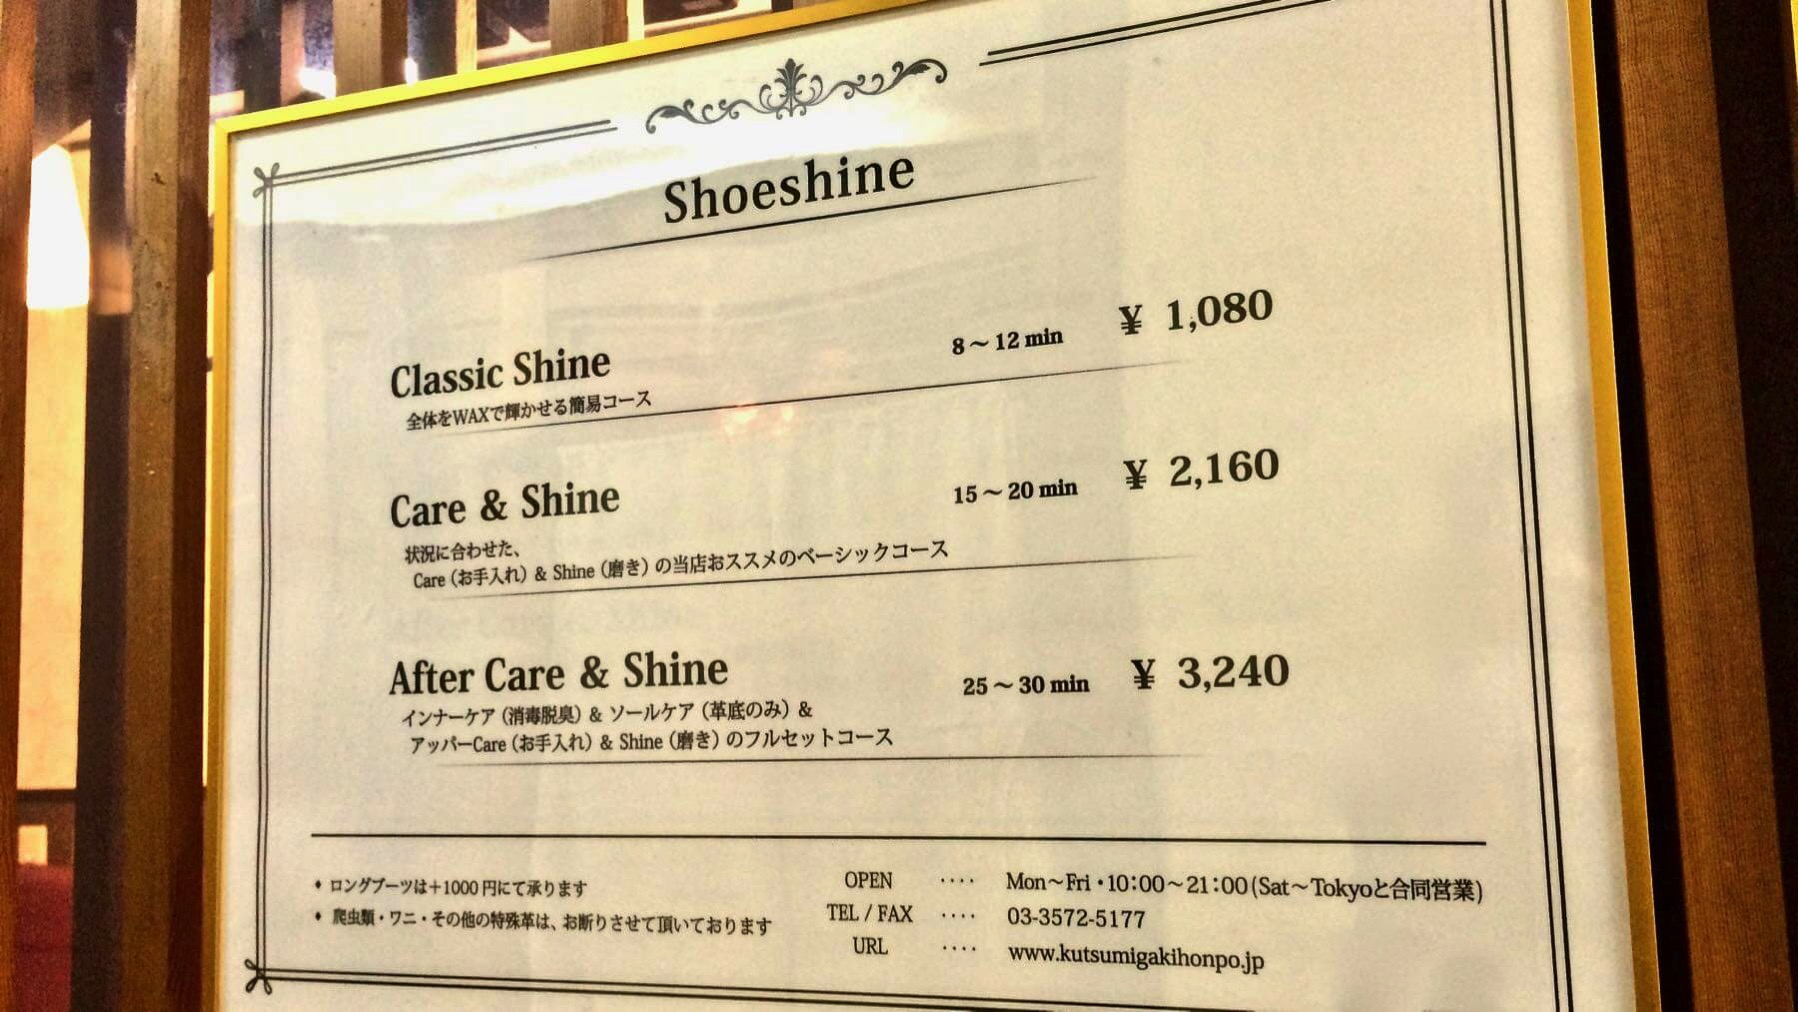 04 Shoeshine Honpo Day Menu